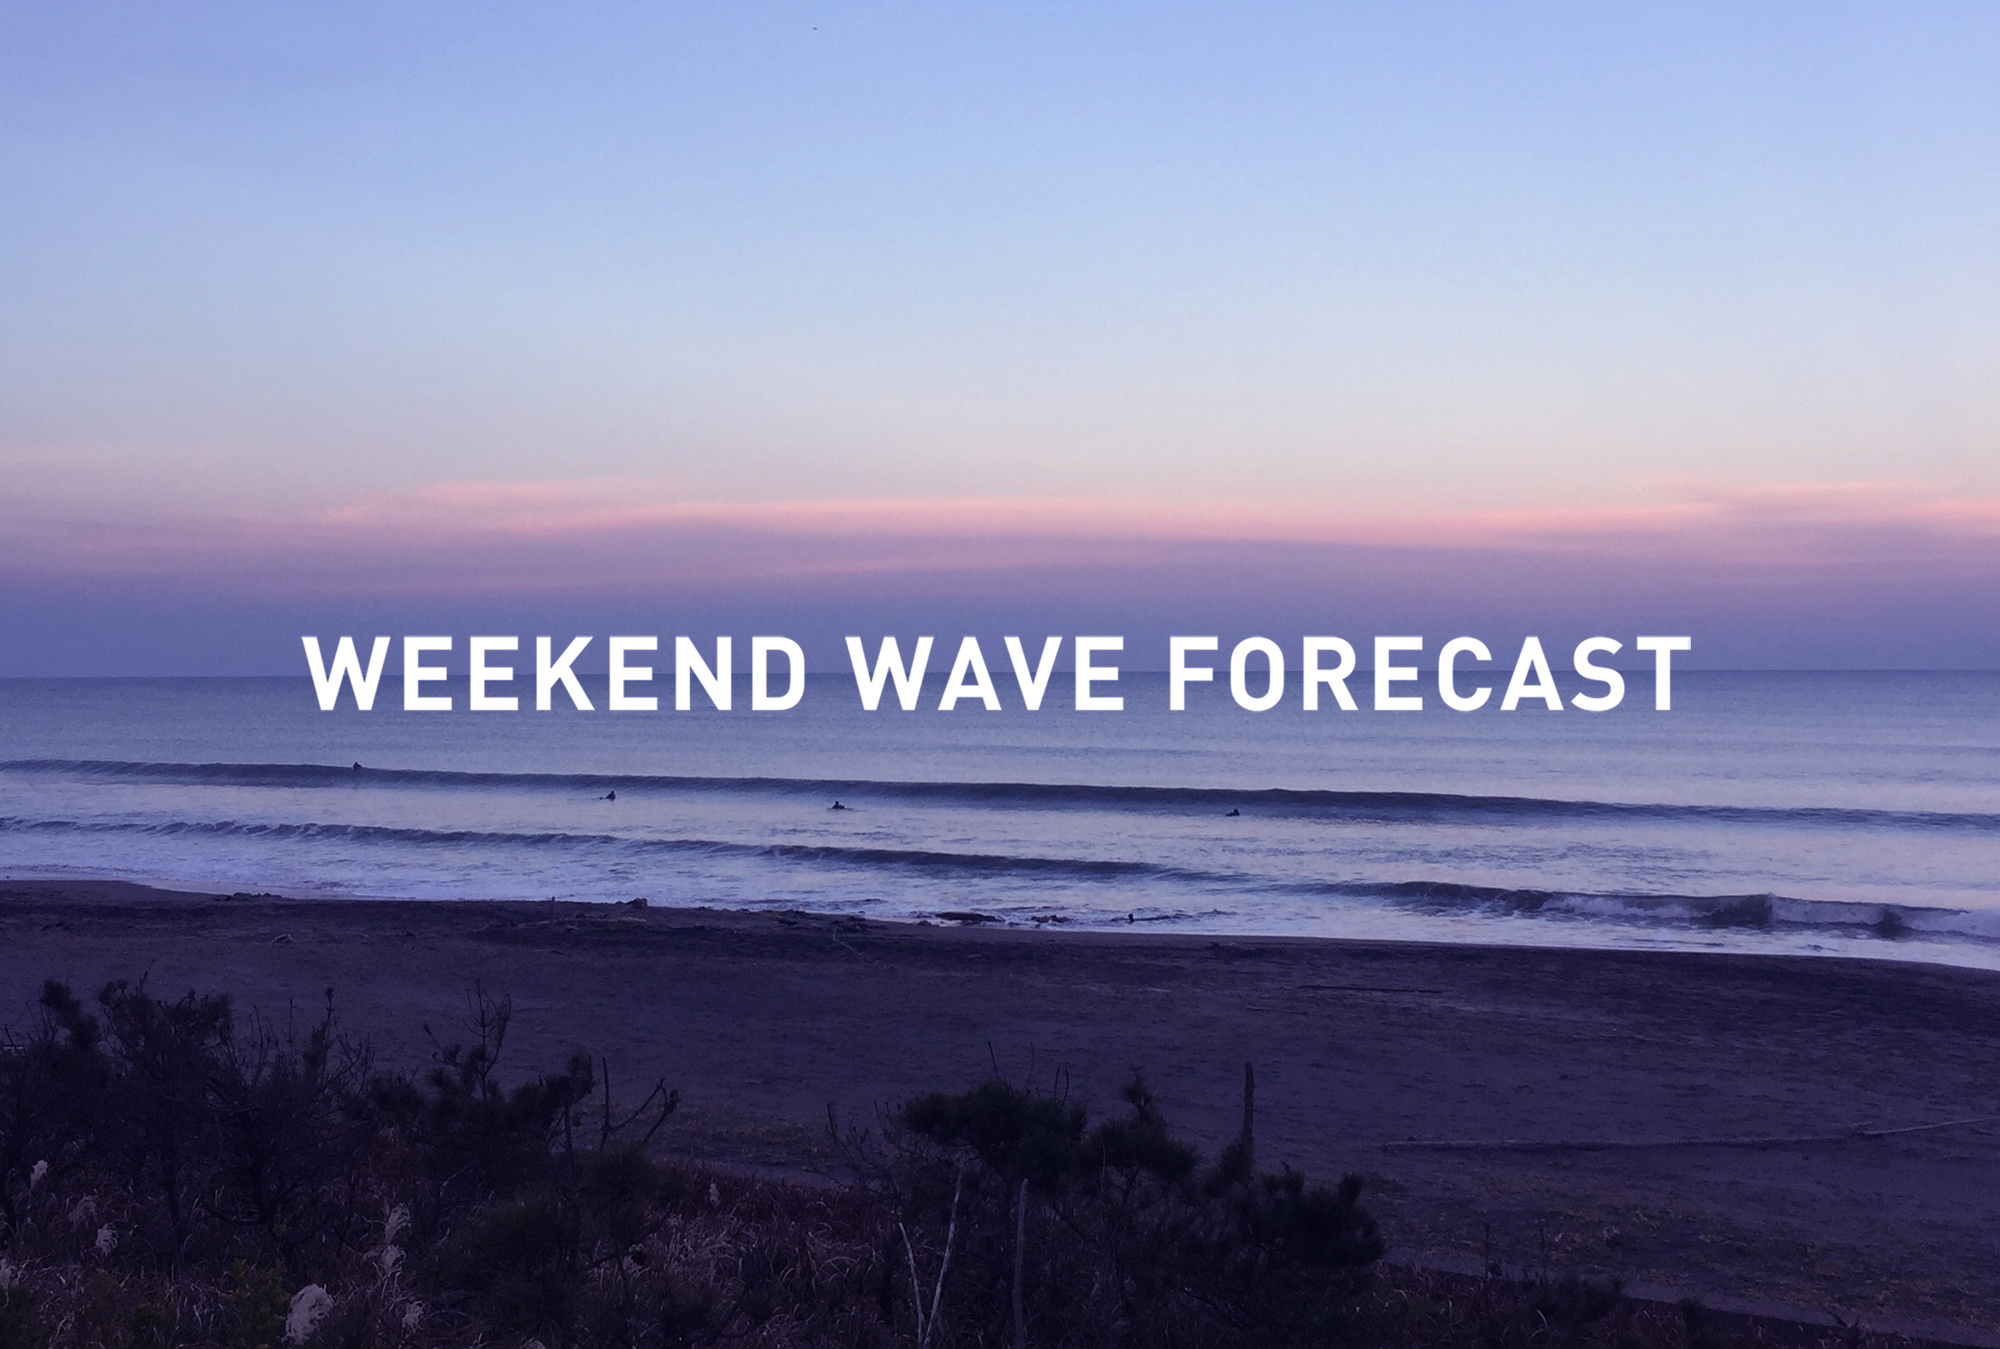 weekend wave forecast 0928